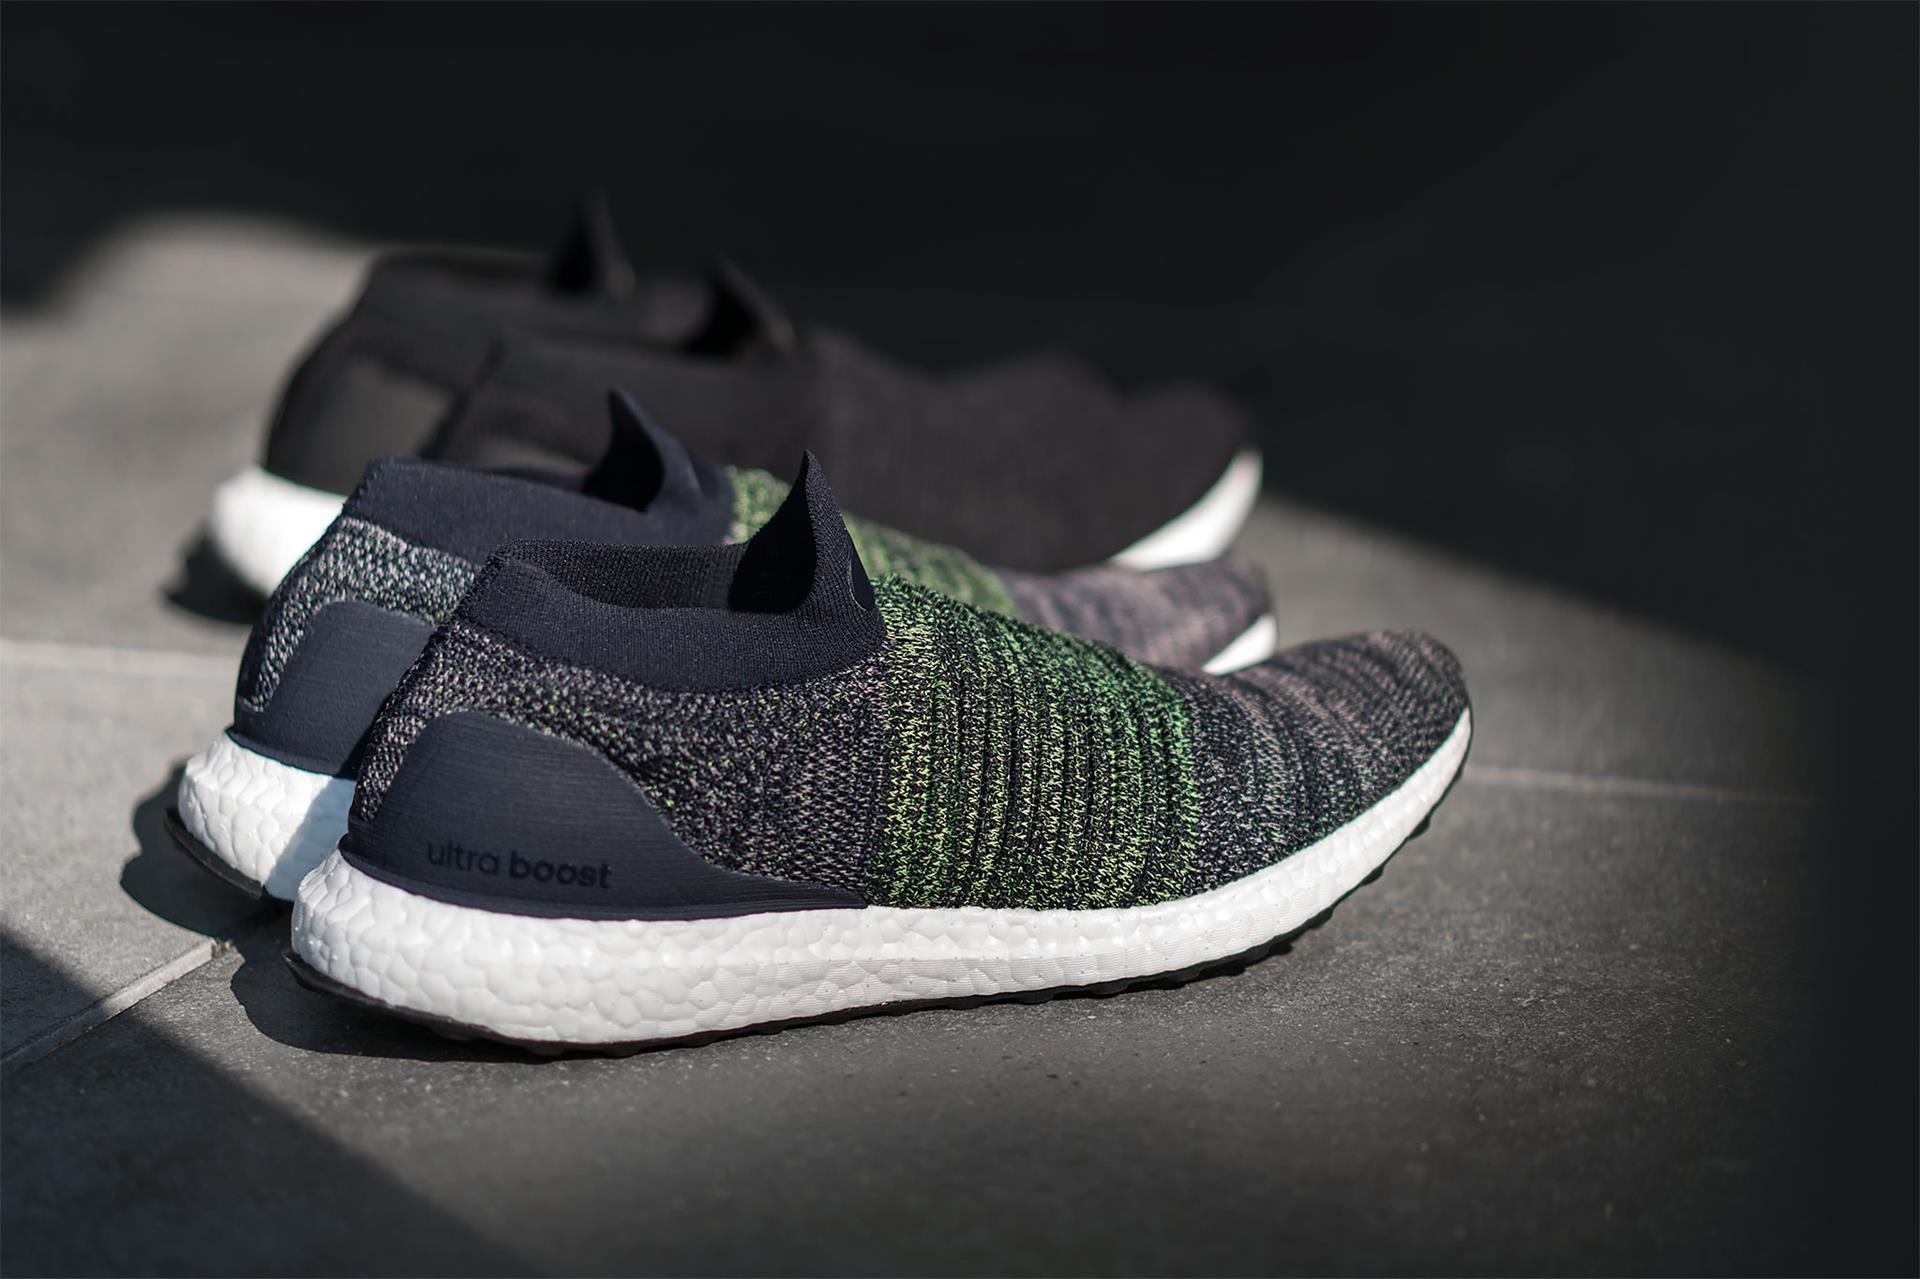 e255f7db0 Haven  Ultraboost Release Information and New Arrivals from Comme ...